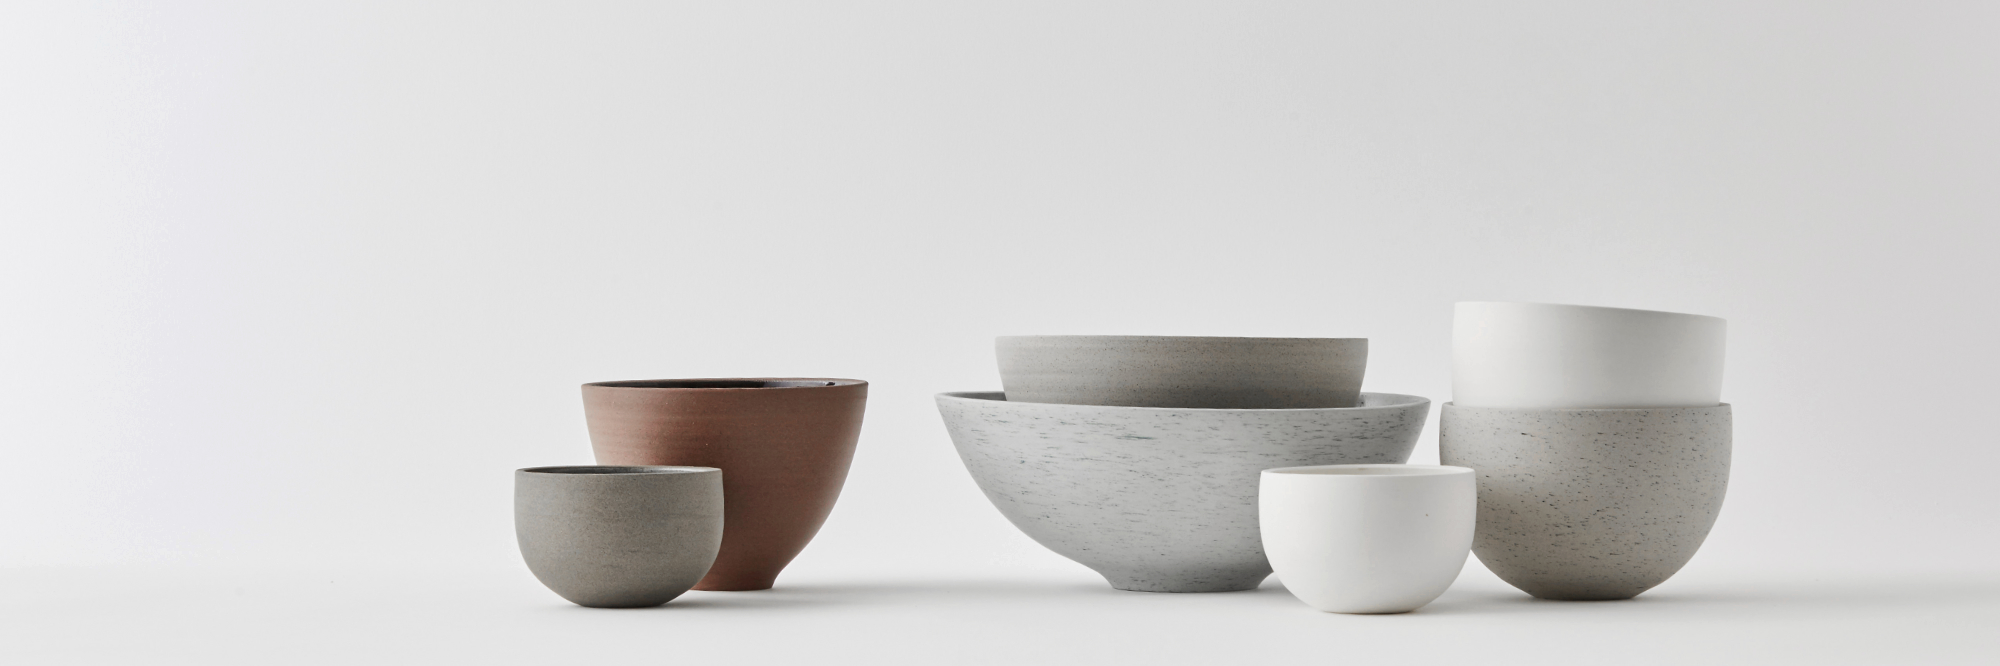 Yeshen Venema Simple-Shap ceramics.jpg